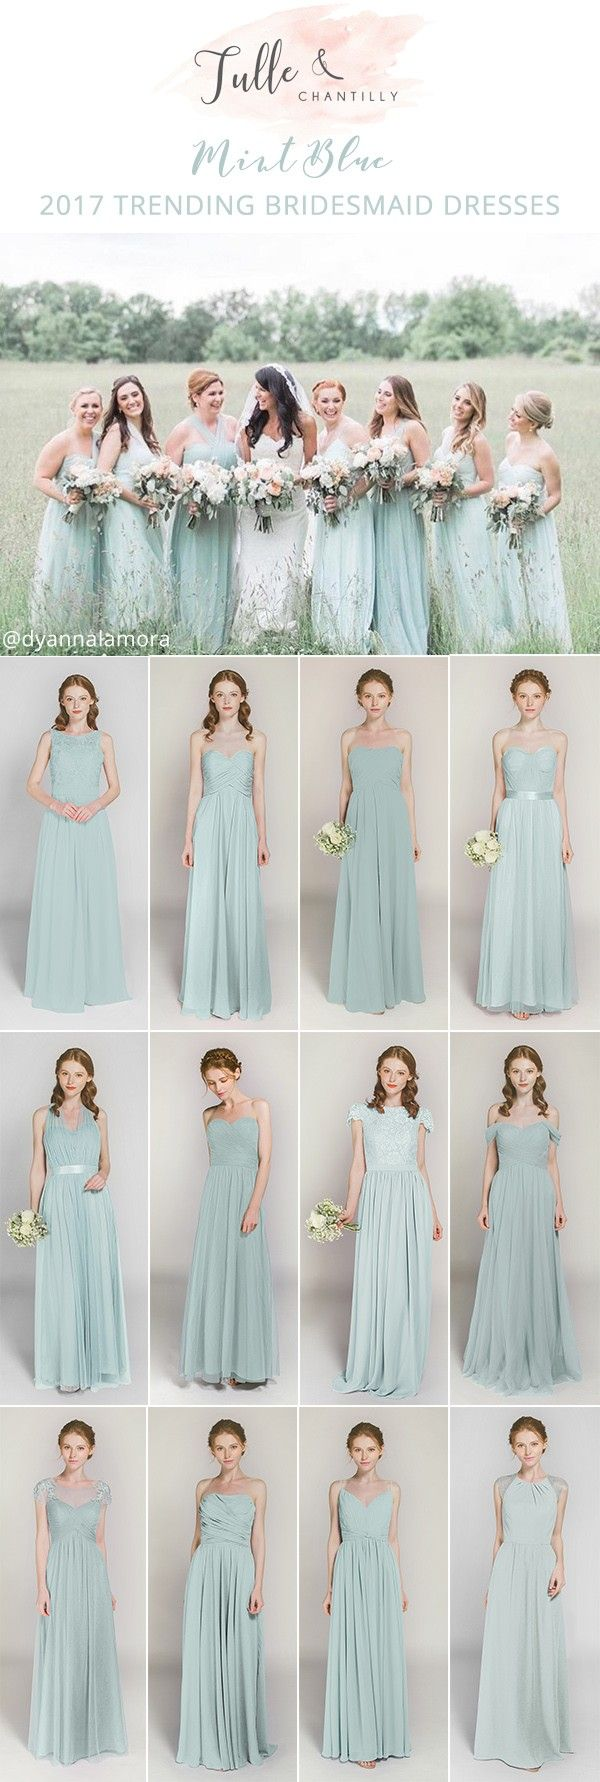 2017 trending mint blue bridesmaid dresses